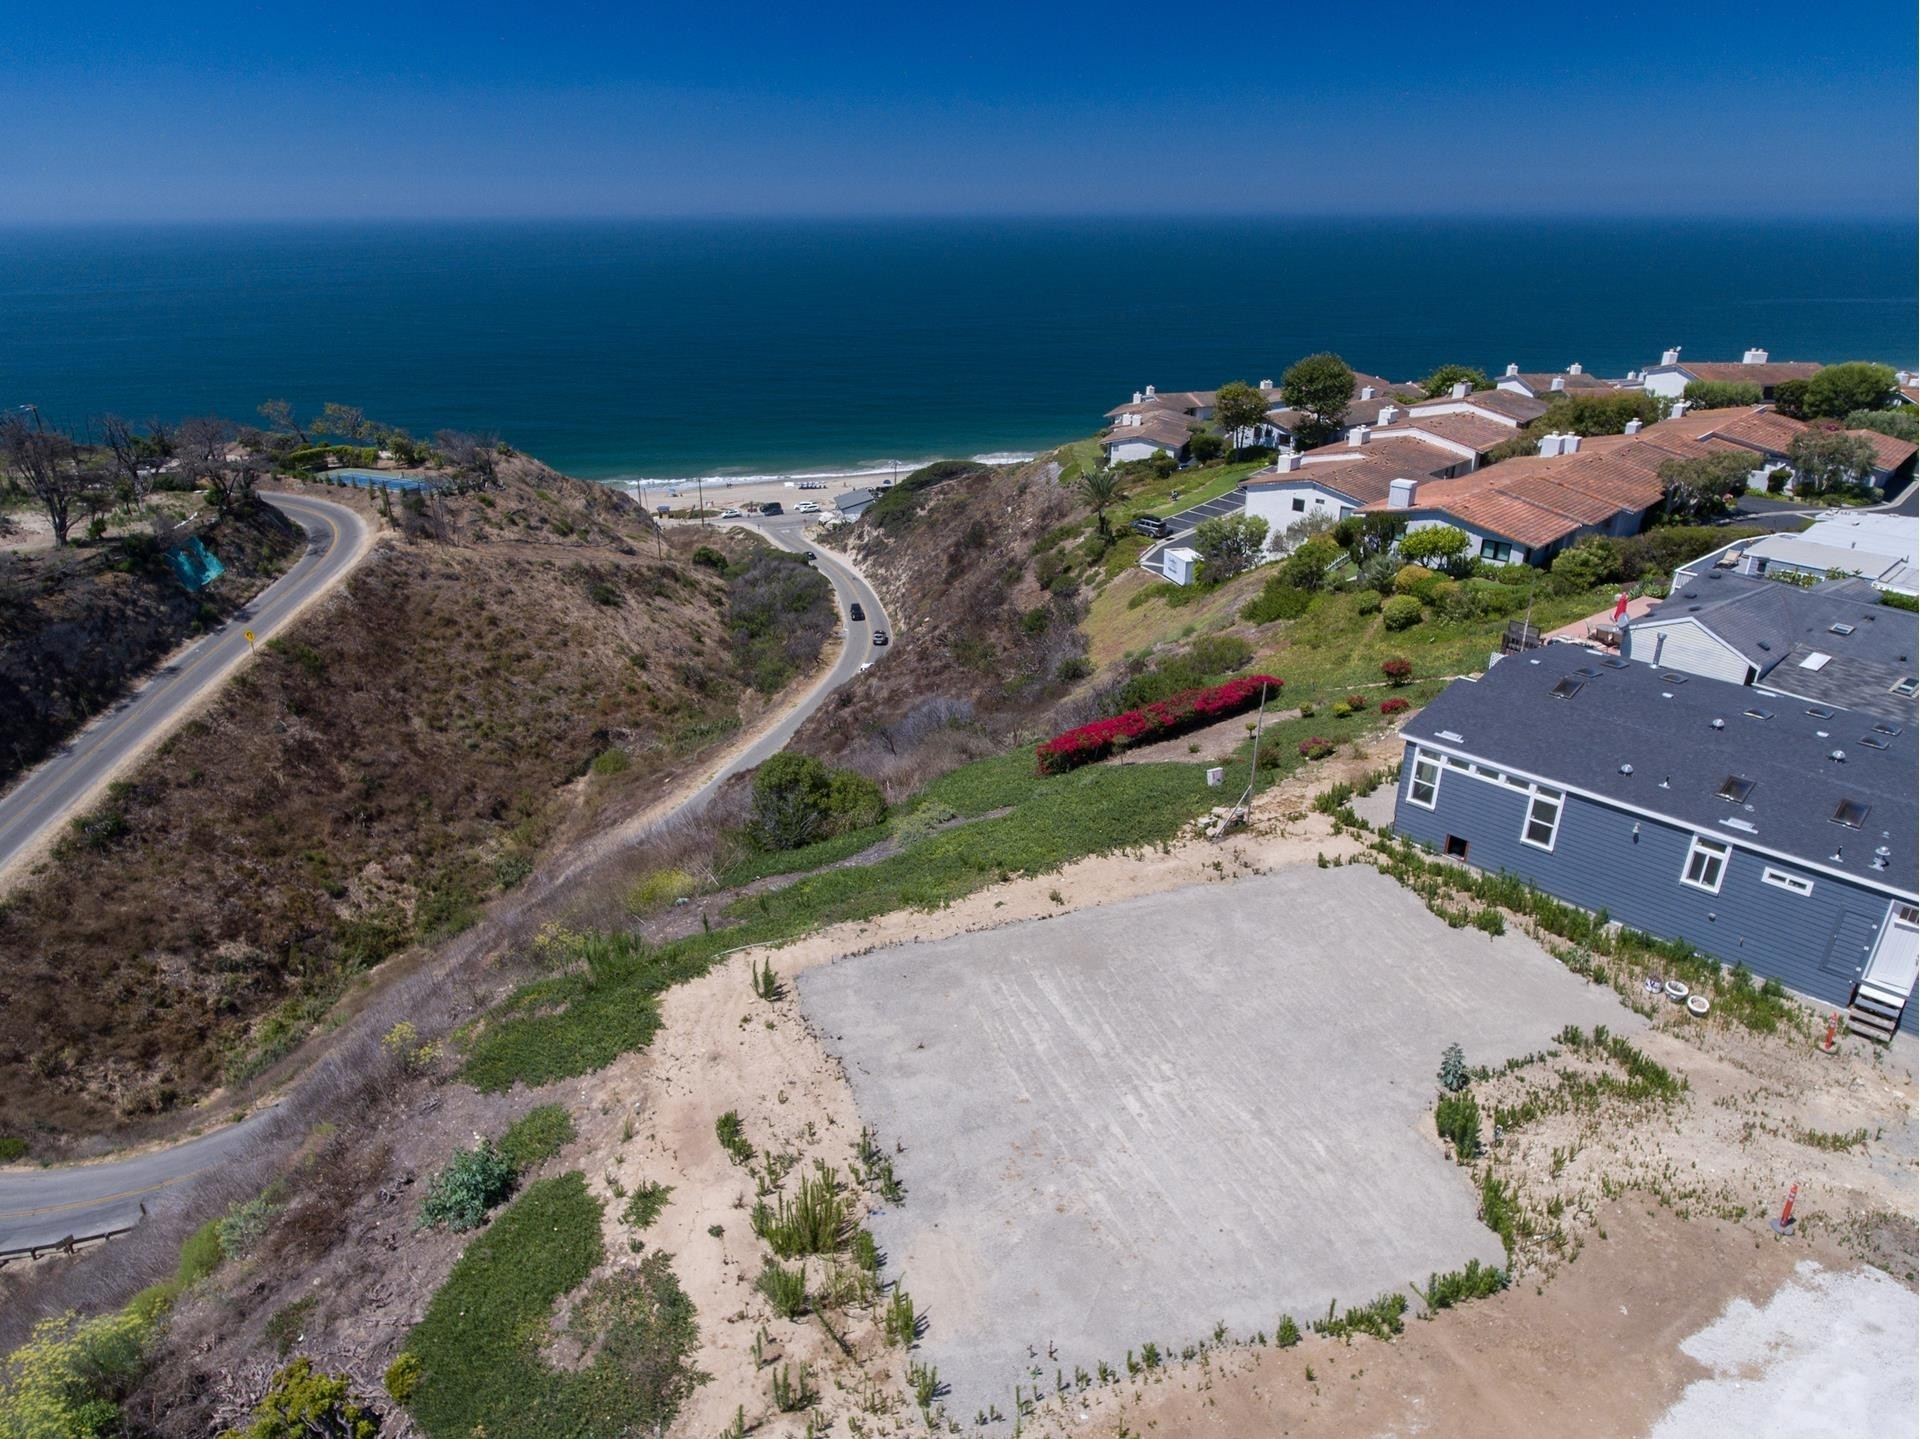 Property at 29500 Heathercliff Rd, 120 Point Dume, Malibu, CA 90265